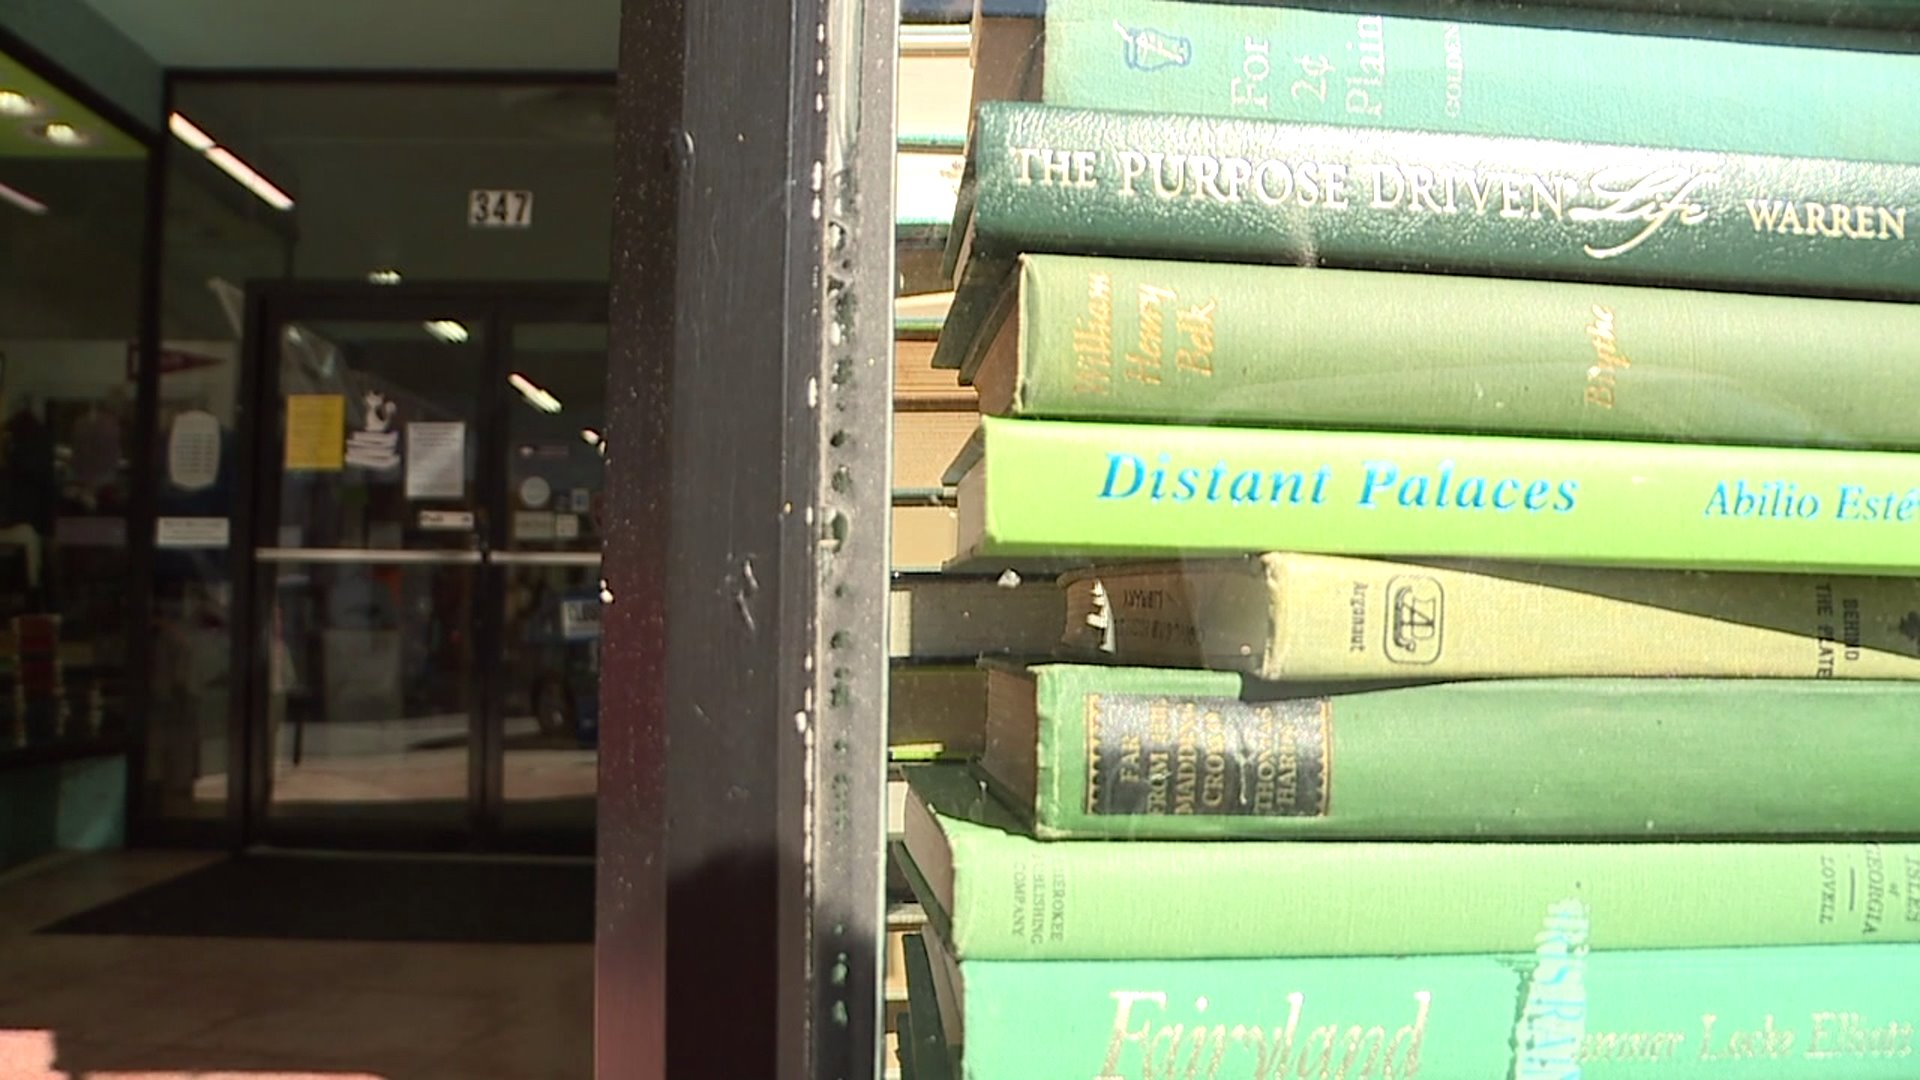 Small Business Spotlight: Persnickety Books in Burlington